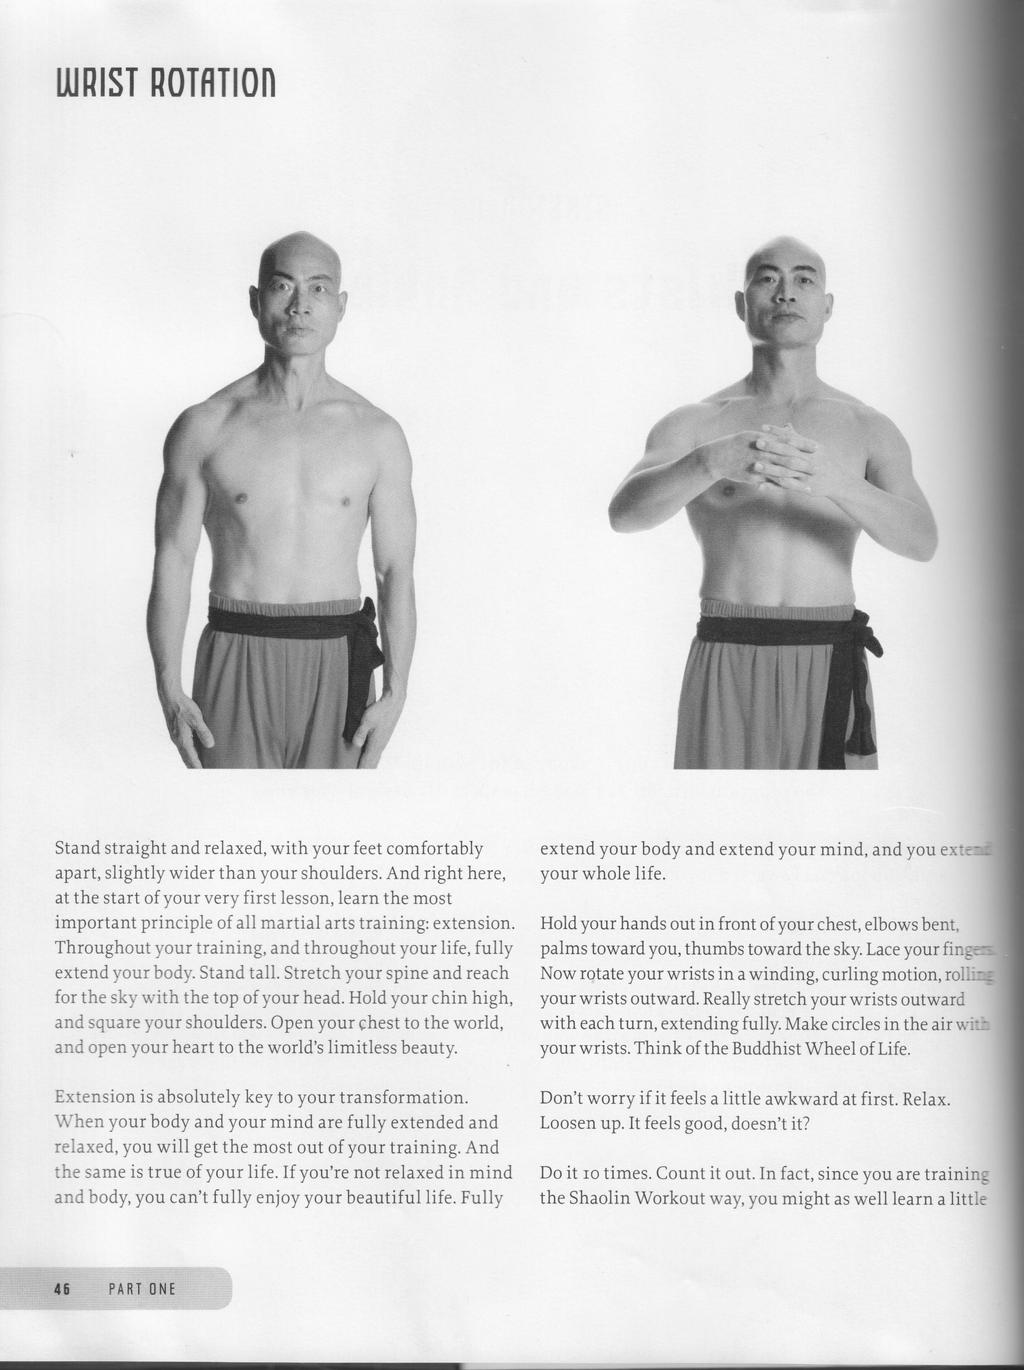 The Shaolin Workout 27 (kung fu) by DarkEclectic on DeviantArt